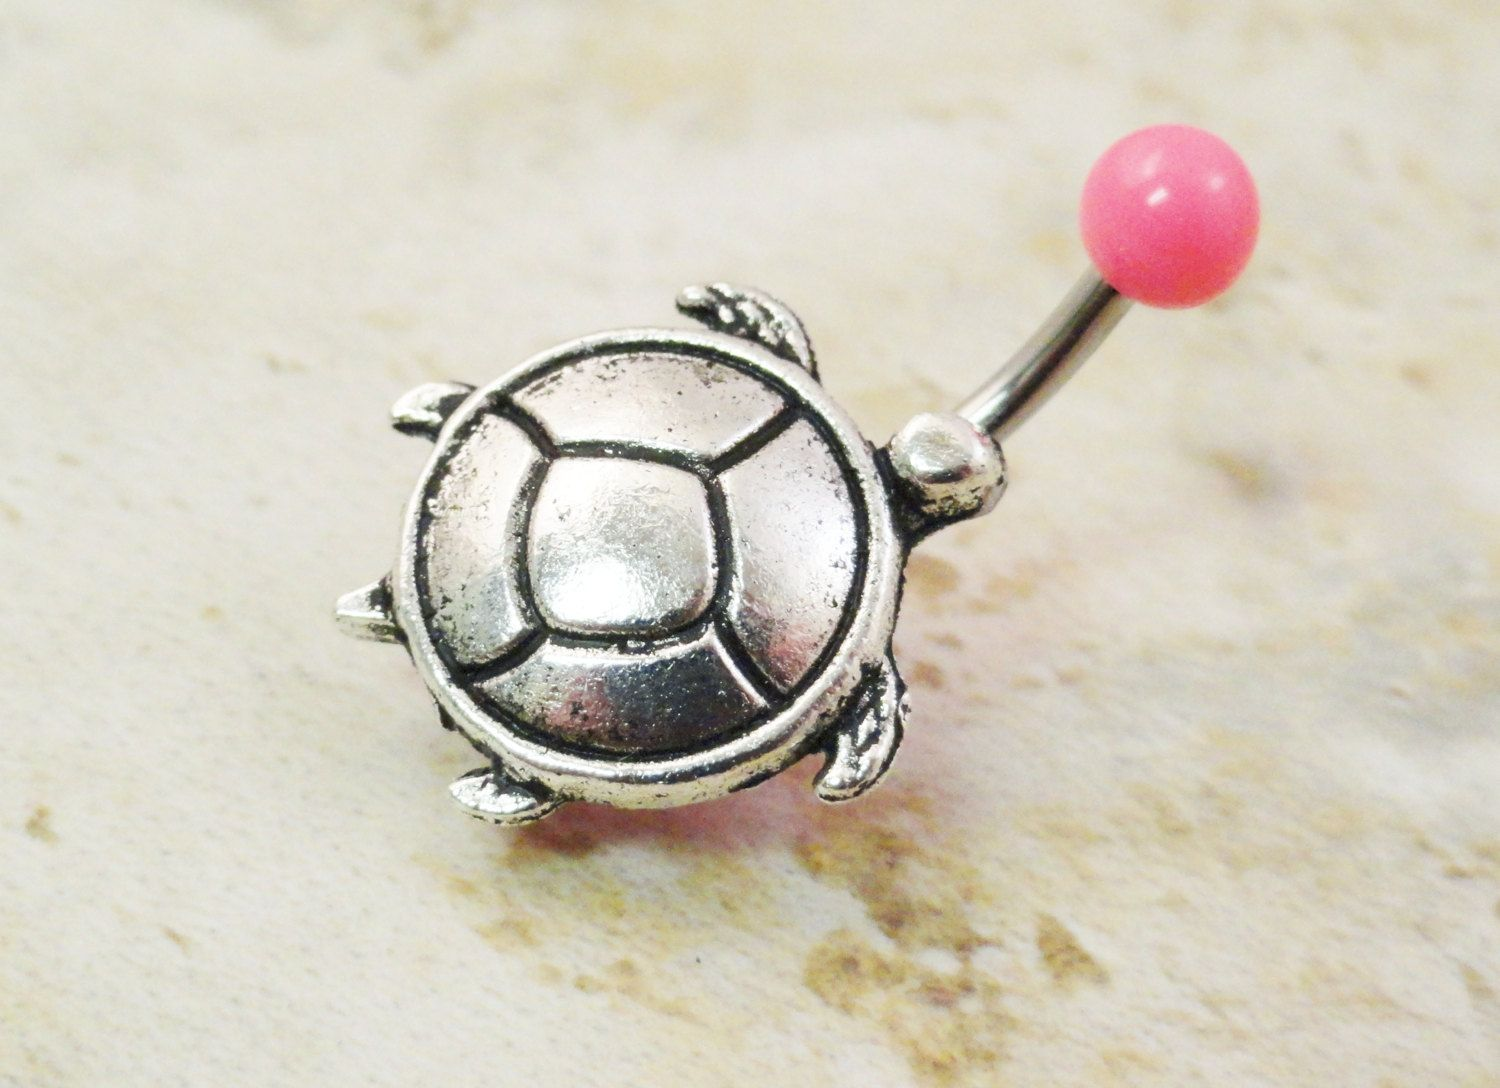 Belly button piercing scar  Pink Turtle Belly Button Ring Jewelry  via Etsy  Modify me